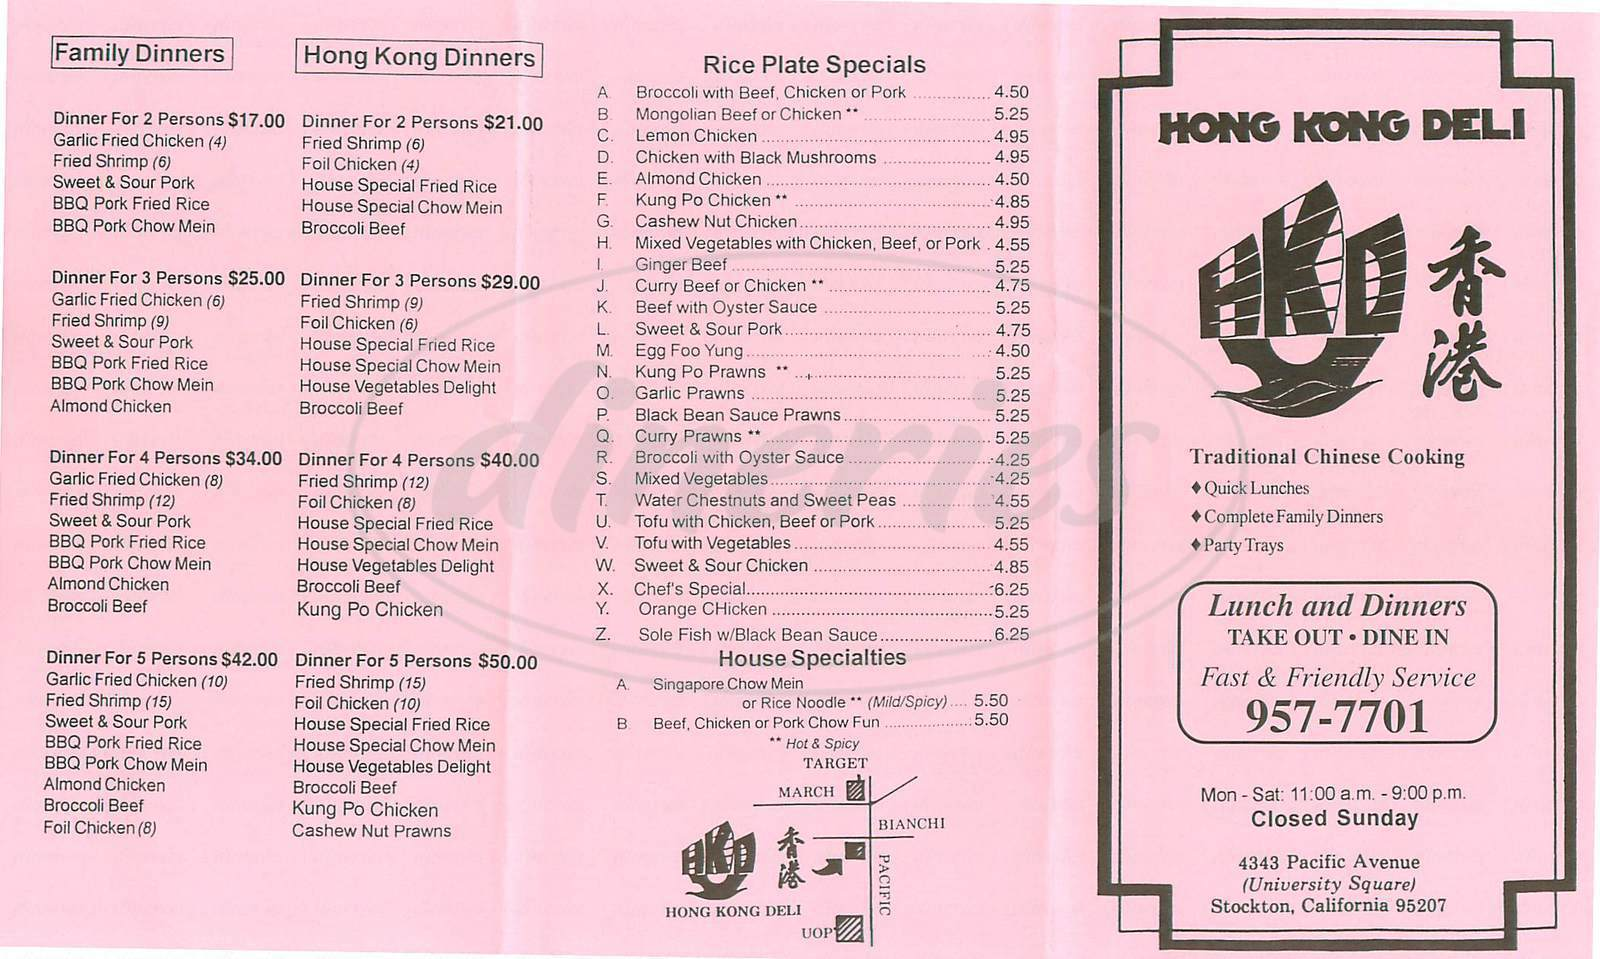 menu for Hong Kong Deli